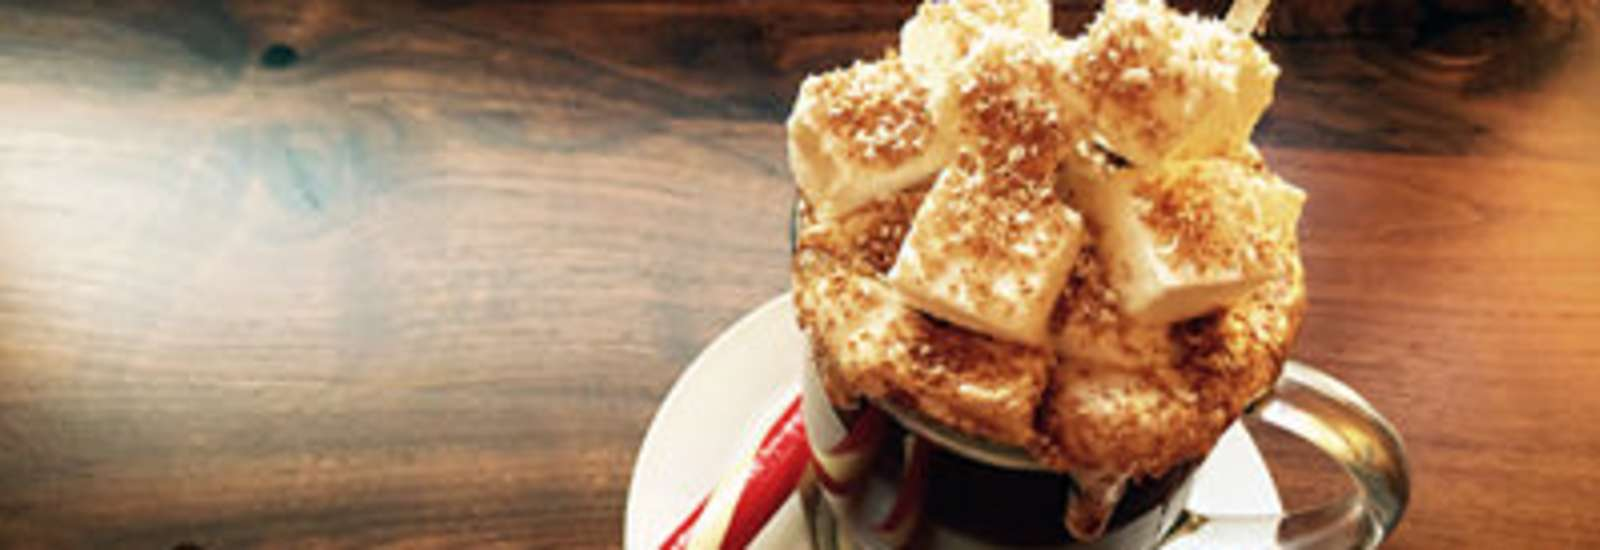 Salted Caramel Hot Chocolate #Recipe | ExploreAsheville.com